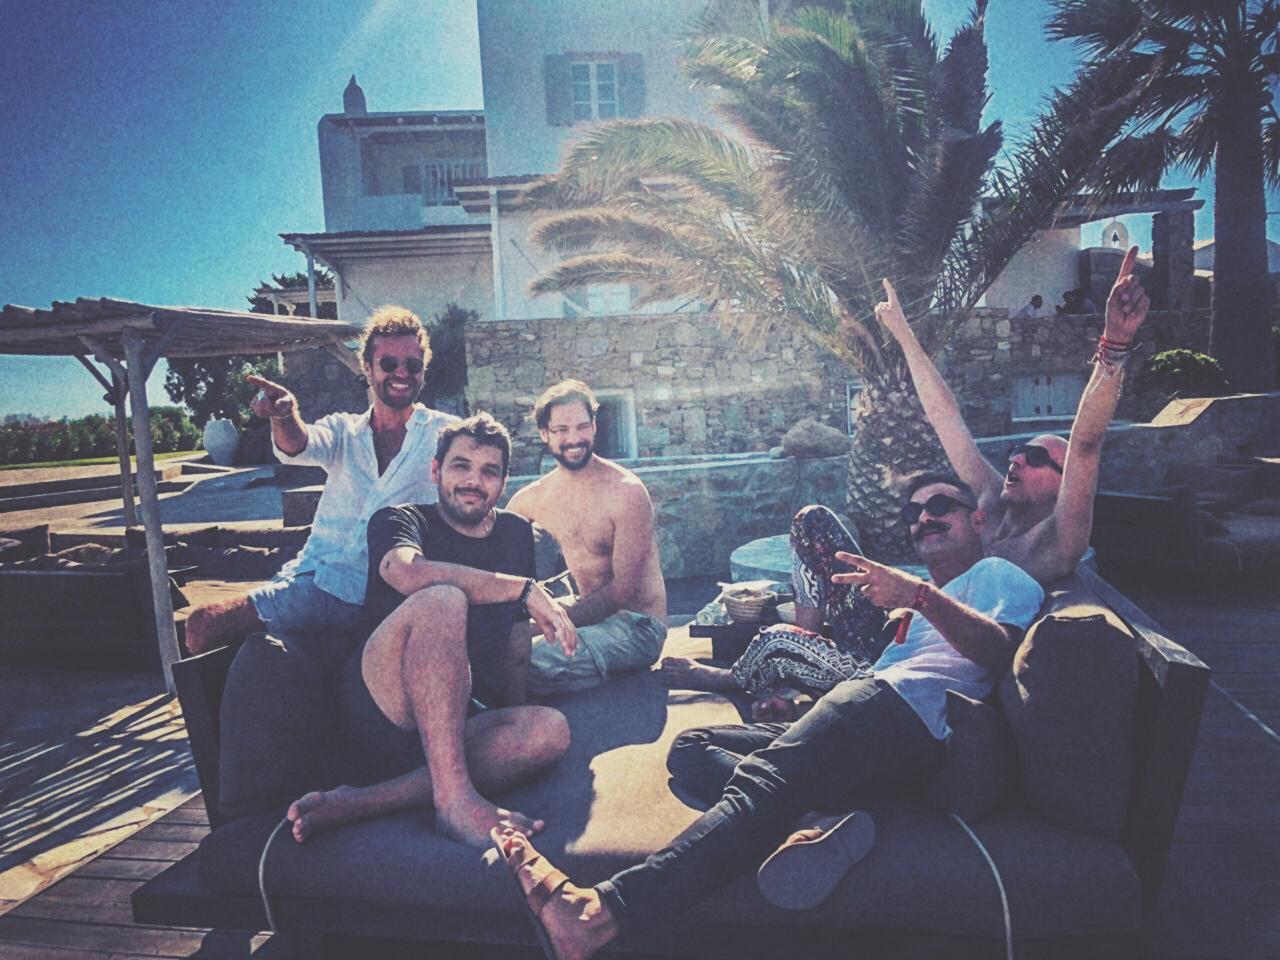 DJs without a cause. Or, maybe, a lost cause? Lee Burridge, Yokoo, Facundo Mohrr, Tommy and Christos.